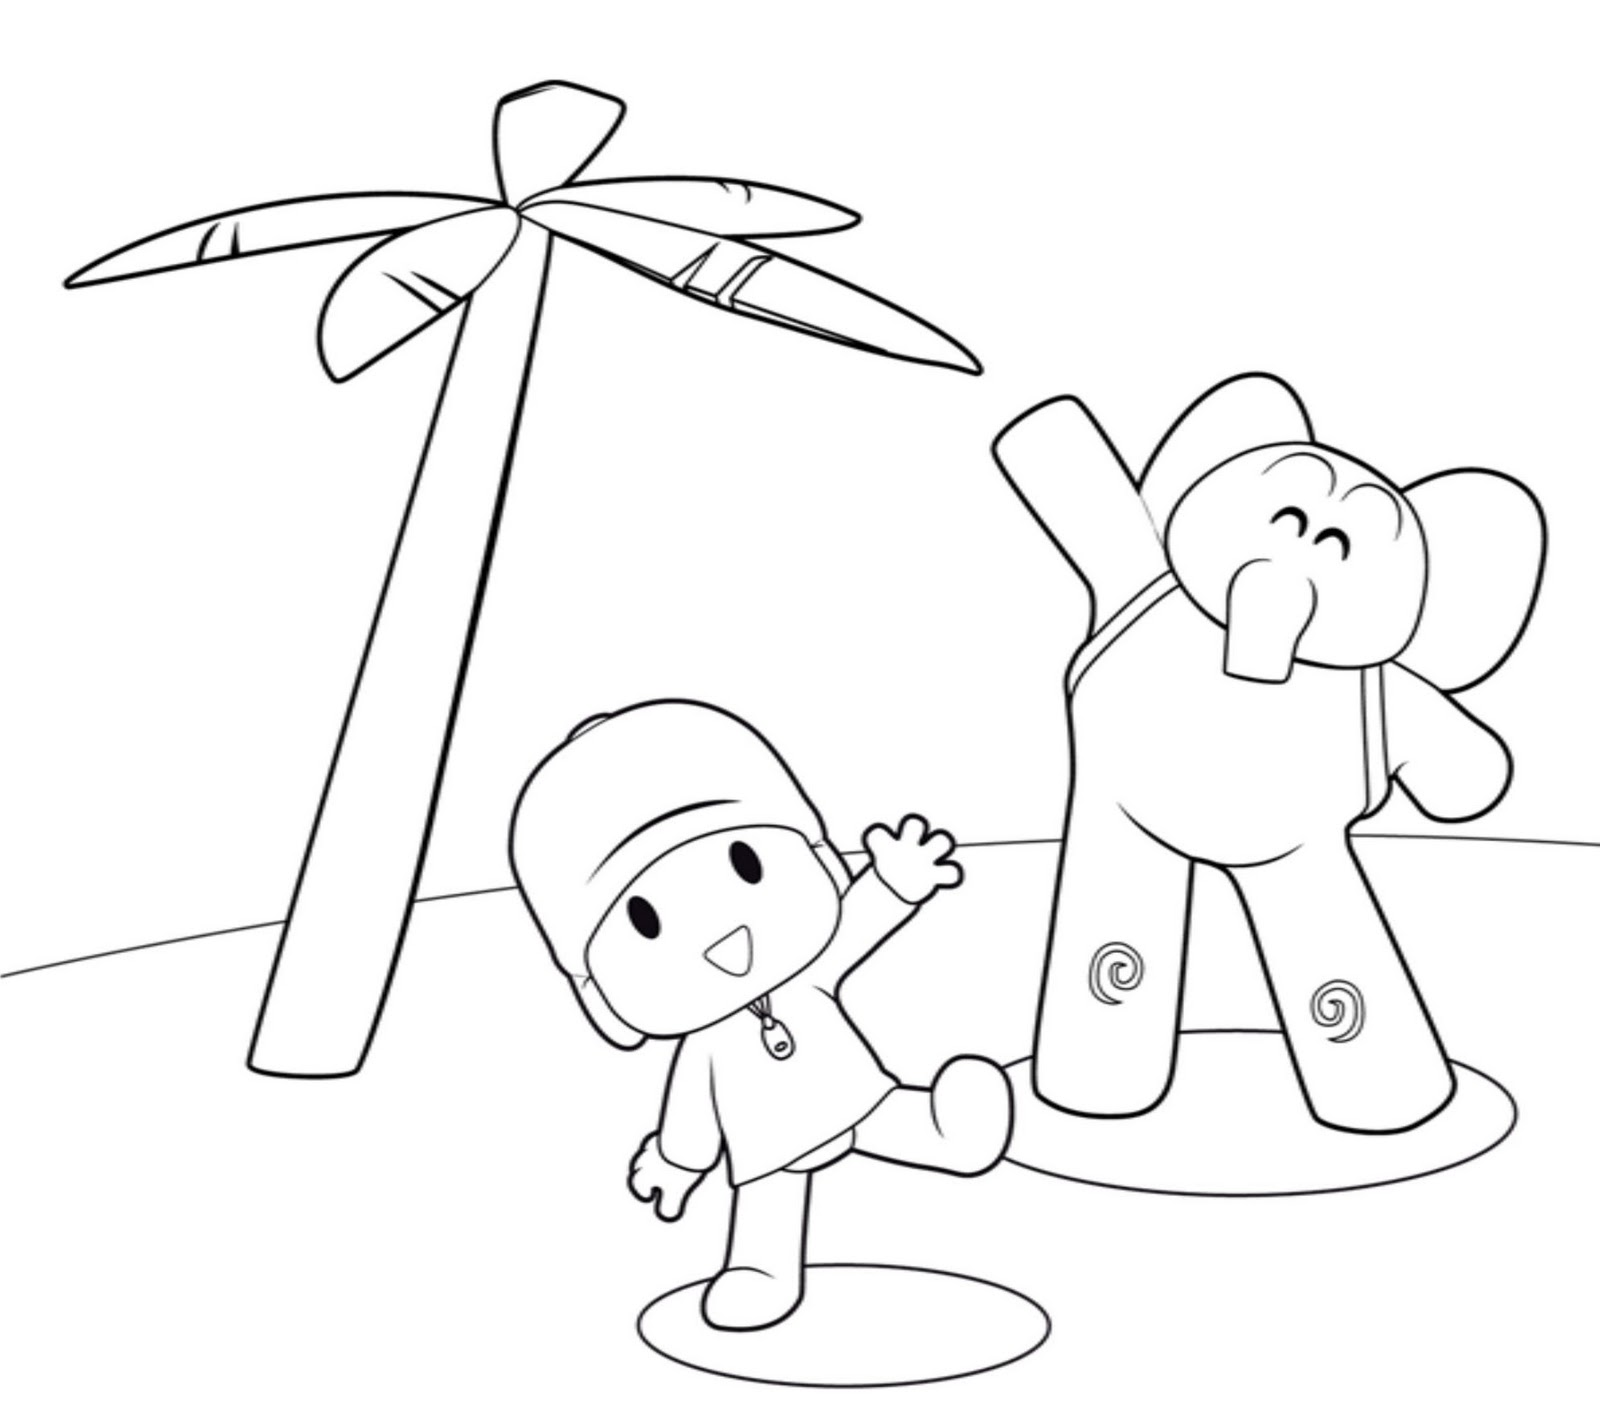 Free Printable Pocoyo Coloring Pages For Kids Printable Pages